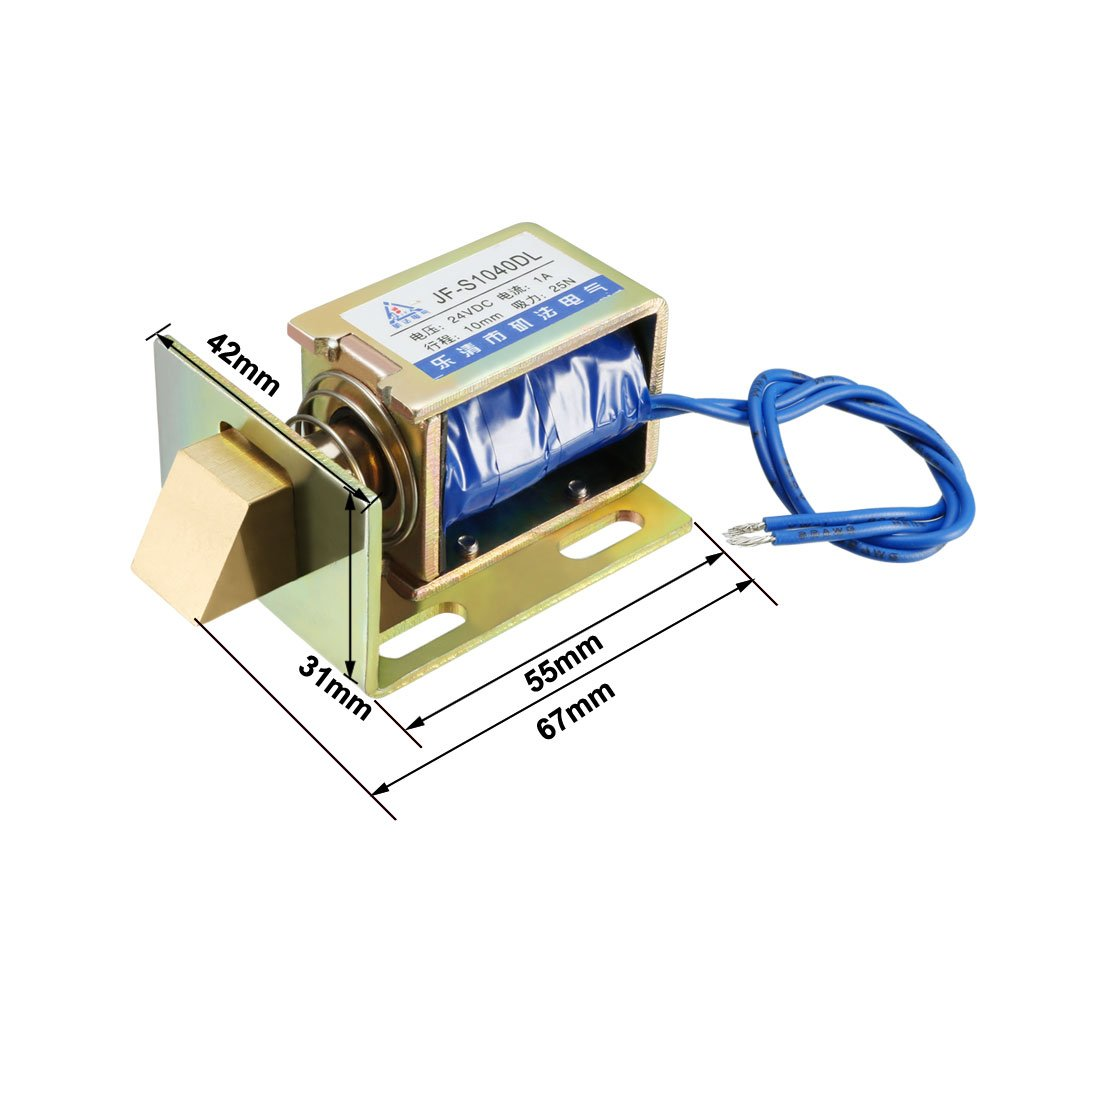 uxcell JF-1578B DC 24V 5A 5KG 20mm Pull Push Type Open Frame Linear Motion Solenoid Electromagnet a18051900ux0038